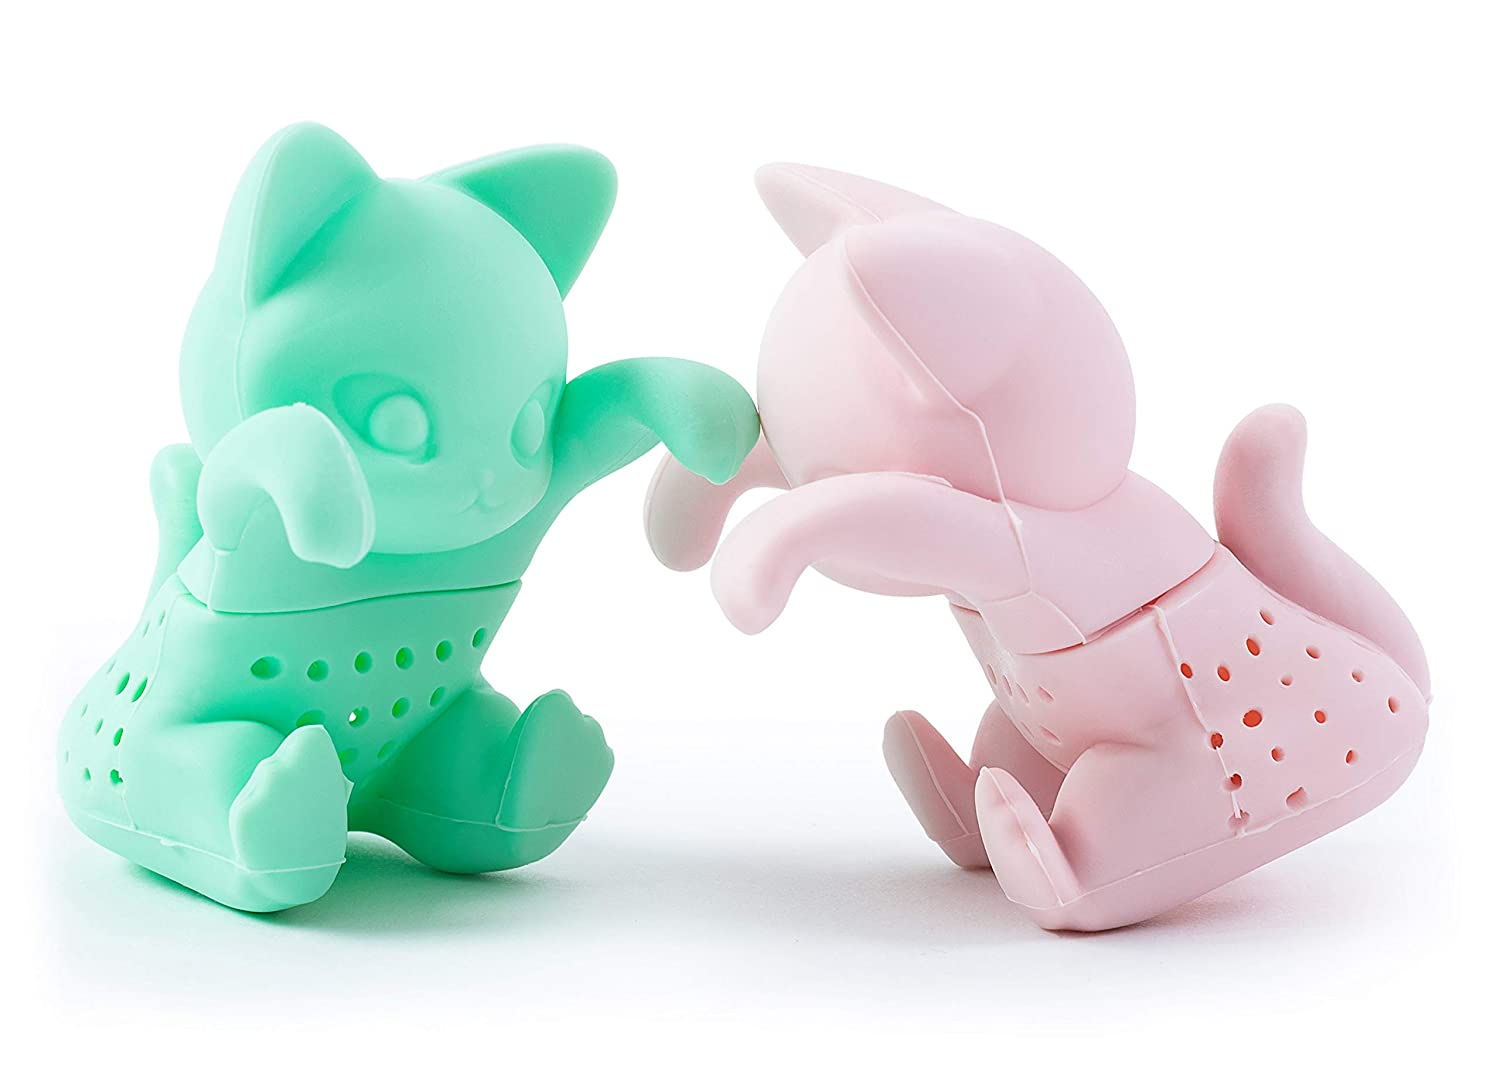 Tea Infuser Set for Loose Leaf Tea - Cute Cat-shaped Tea Strainers for Enjoyable Tea Times with Friends -Set of 2 - Pink and Mint Green